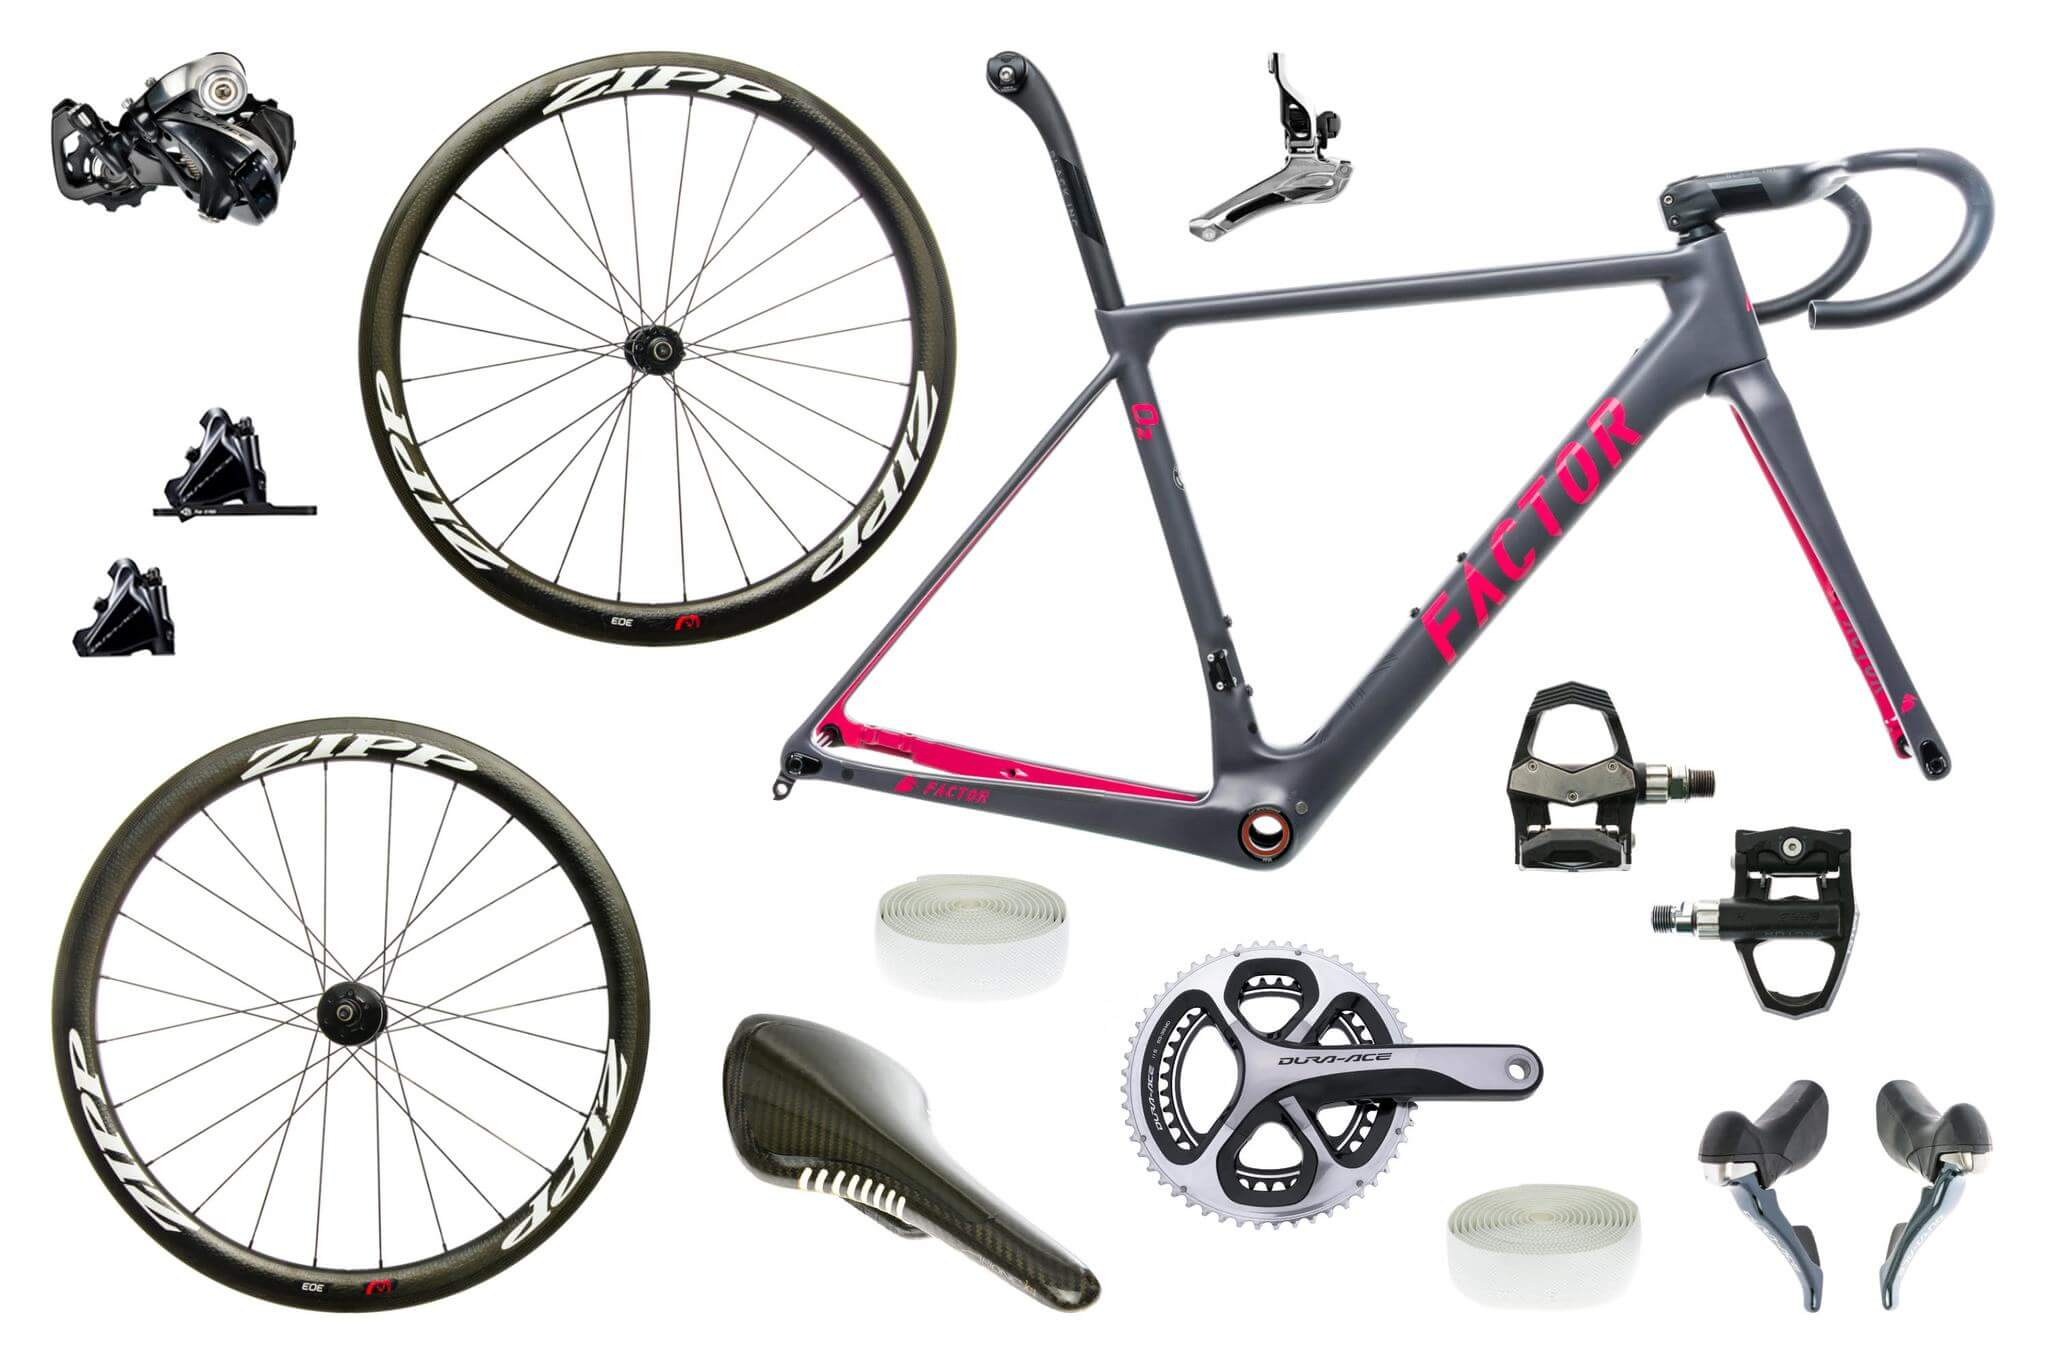 Save Time and Money With Bike Parts